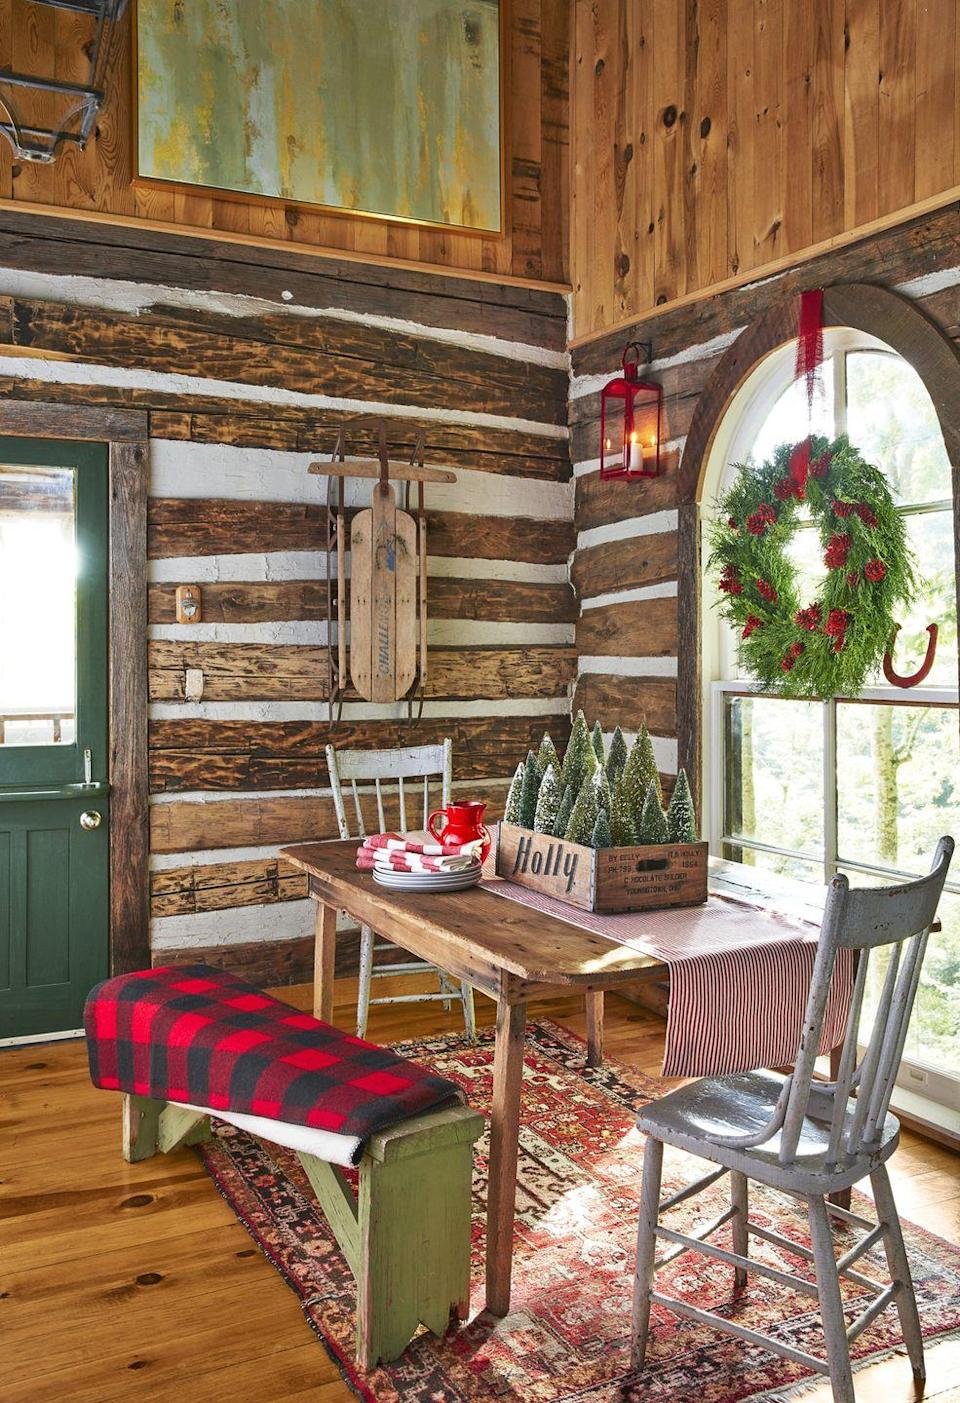 """<p>Singer-songwriter Holly Williams, the owner of this Tennessee farmhouse, uses a 1960s Holly Beverage Co. soda crate filled with <a href=""""https://www.countryliving.com/home-design/g2800/bottlebrush-trees-christmas-decorating-ideas/"""" rel=""""nofollow noopener"""" target=""""_blank"""" data-ylk=""""slk:bottle brush trees"""" class=""""link rapid-noclick-resp"""">bottle brush trees</a> to add festive cheer to her dining nook.<br></p><p><a class=""""link rapid-noclick-resp"""" href=""""https://www.amazon.com/AerWo-Artificial-Christmas-Bottle-Ornaments/dp/B07FDGB77K?tag=syn-yahoo-20&ascsubtag=%5Bartid%7C10050.g.1247%5Bsrc%7Cyahoo-us"""" rel=""""nofollow noopener"""" target=""""_blank"""" data-ylk=""""slk:SHOP BOTTLE BRUSH TREES"""">SHOP BOTTLE BRUSH TREES</a></p>"""